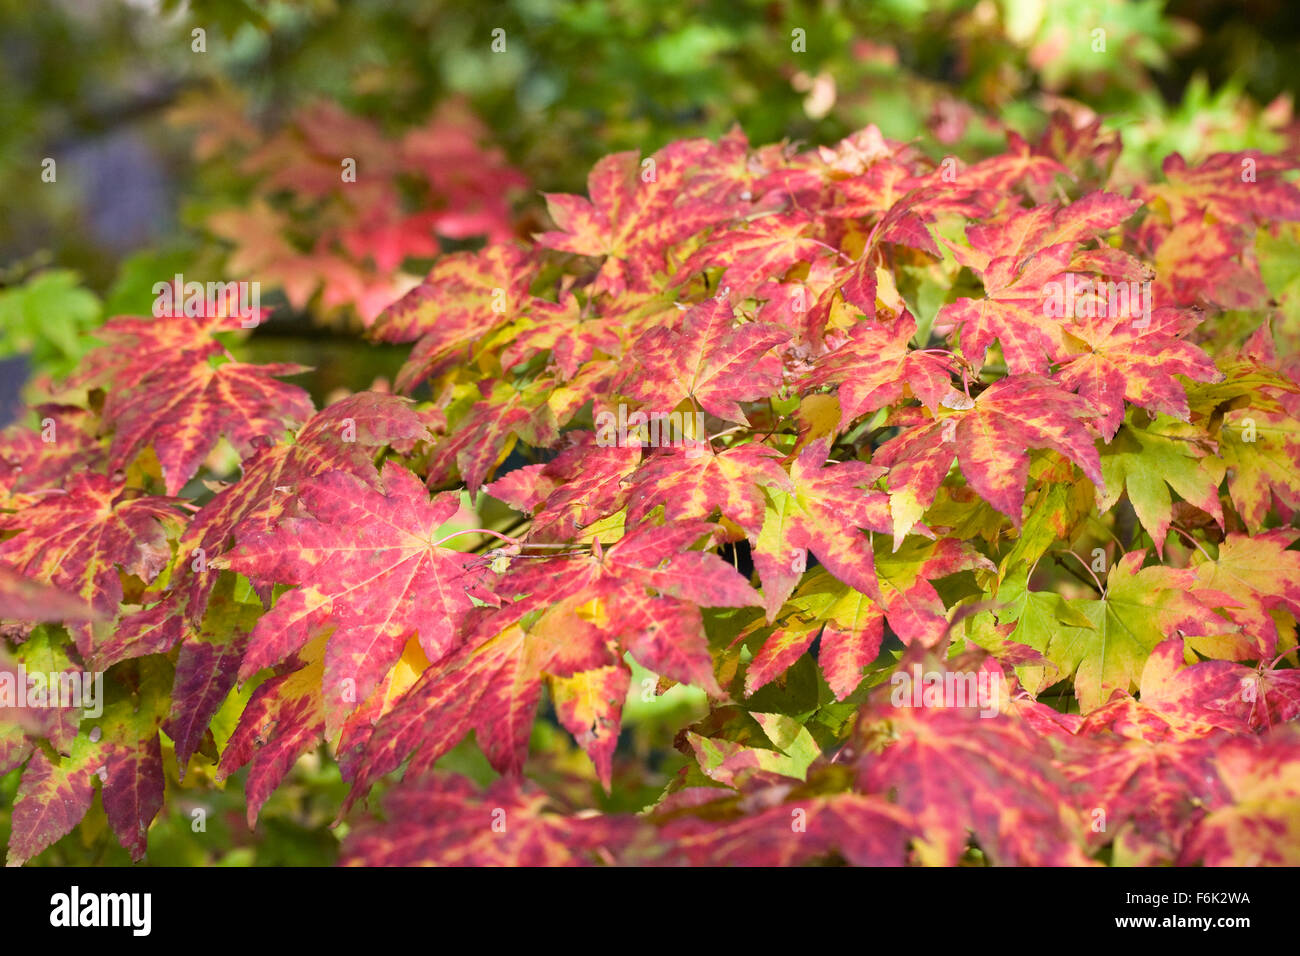 Acer Palmatum Autumn Moon Stock Photos Acer Palmatum Autumn Moon